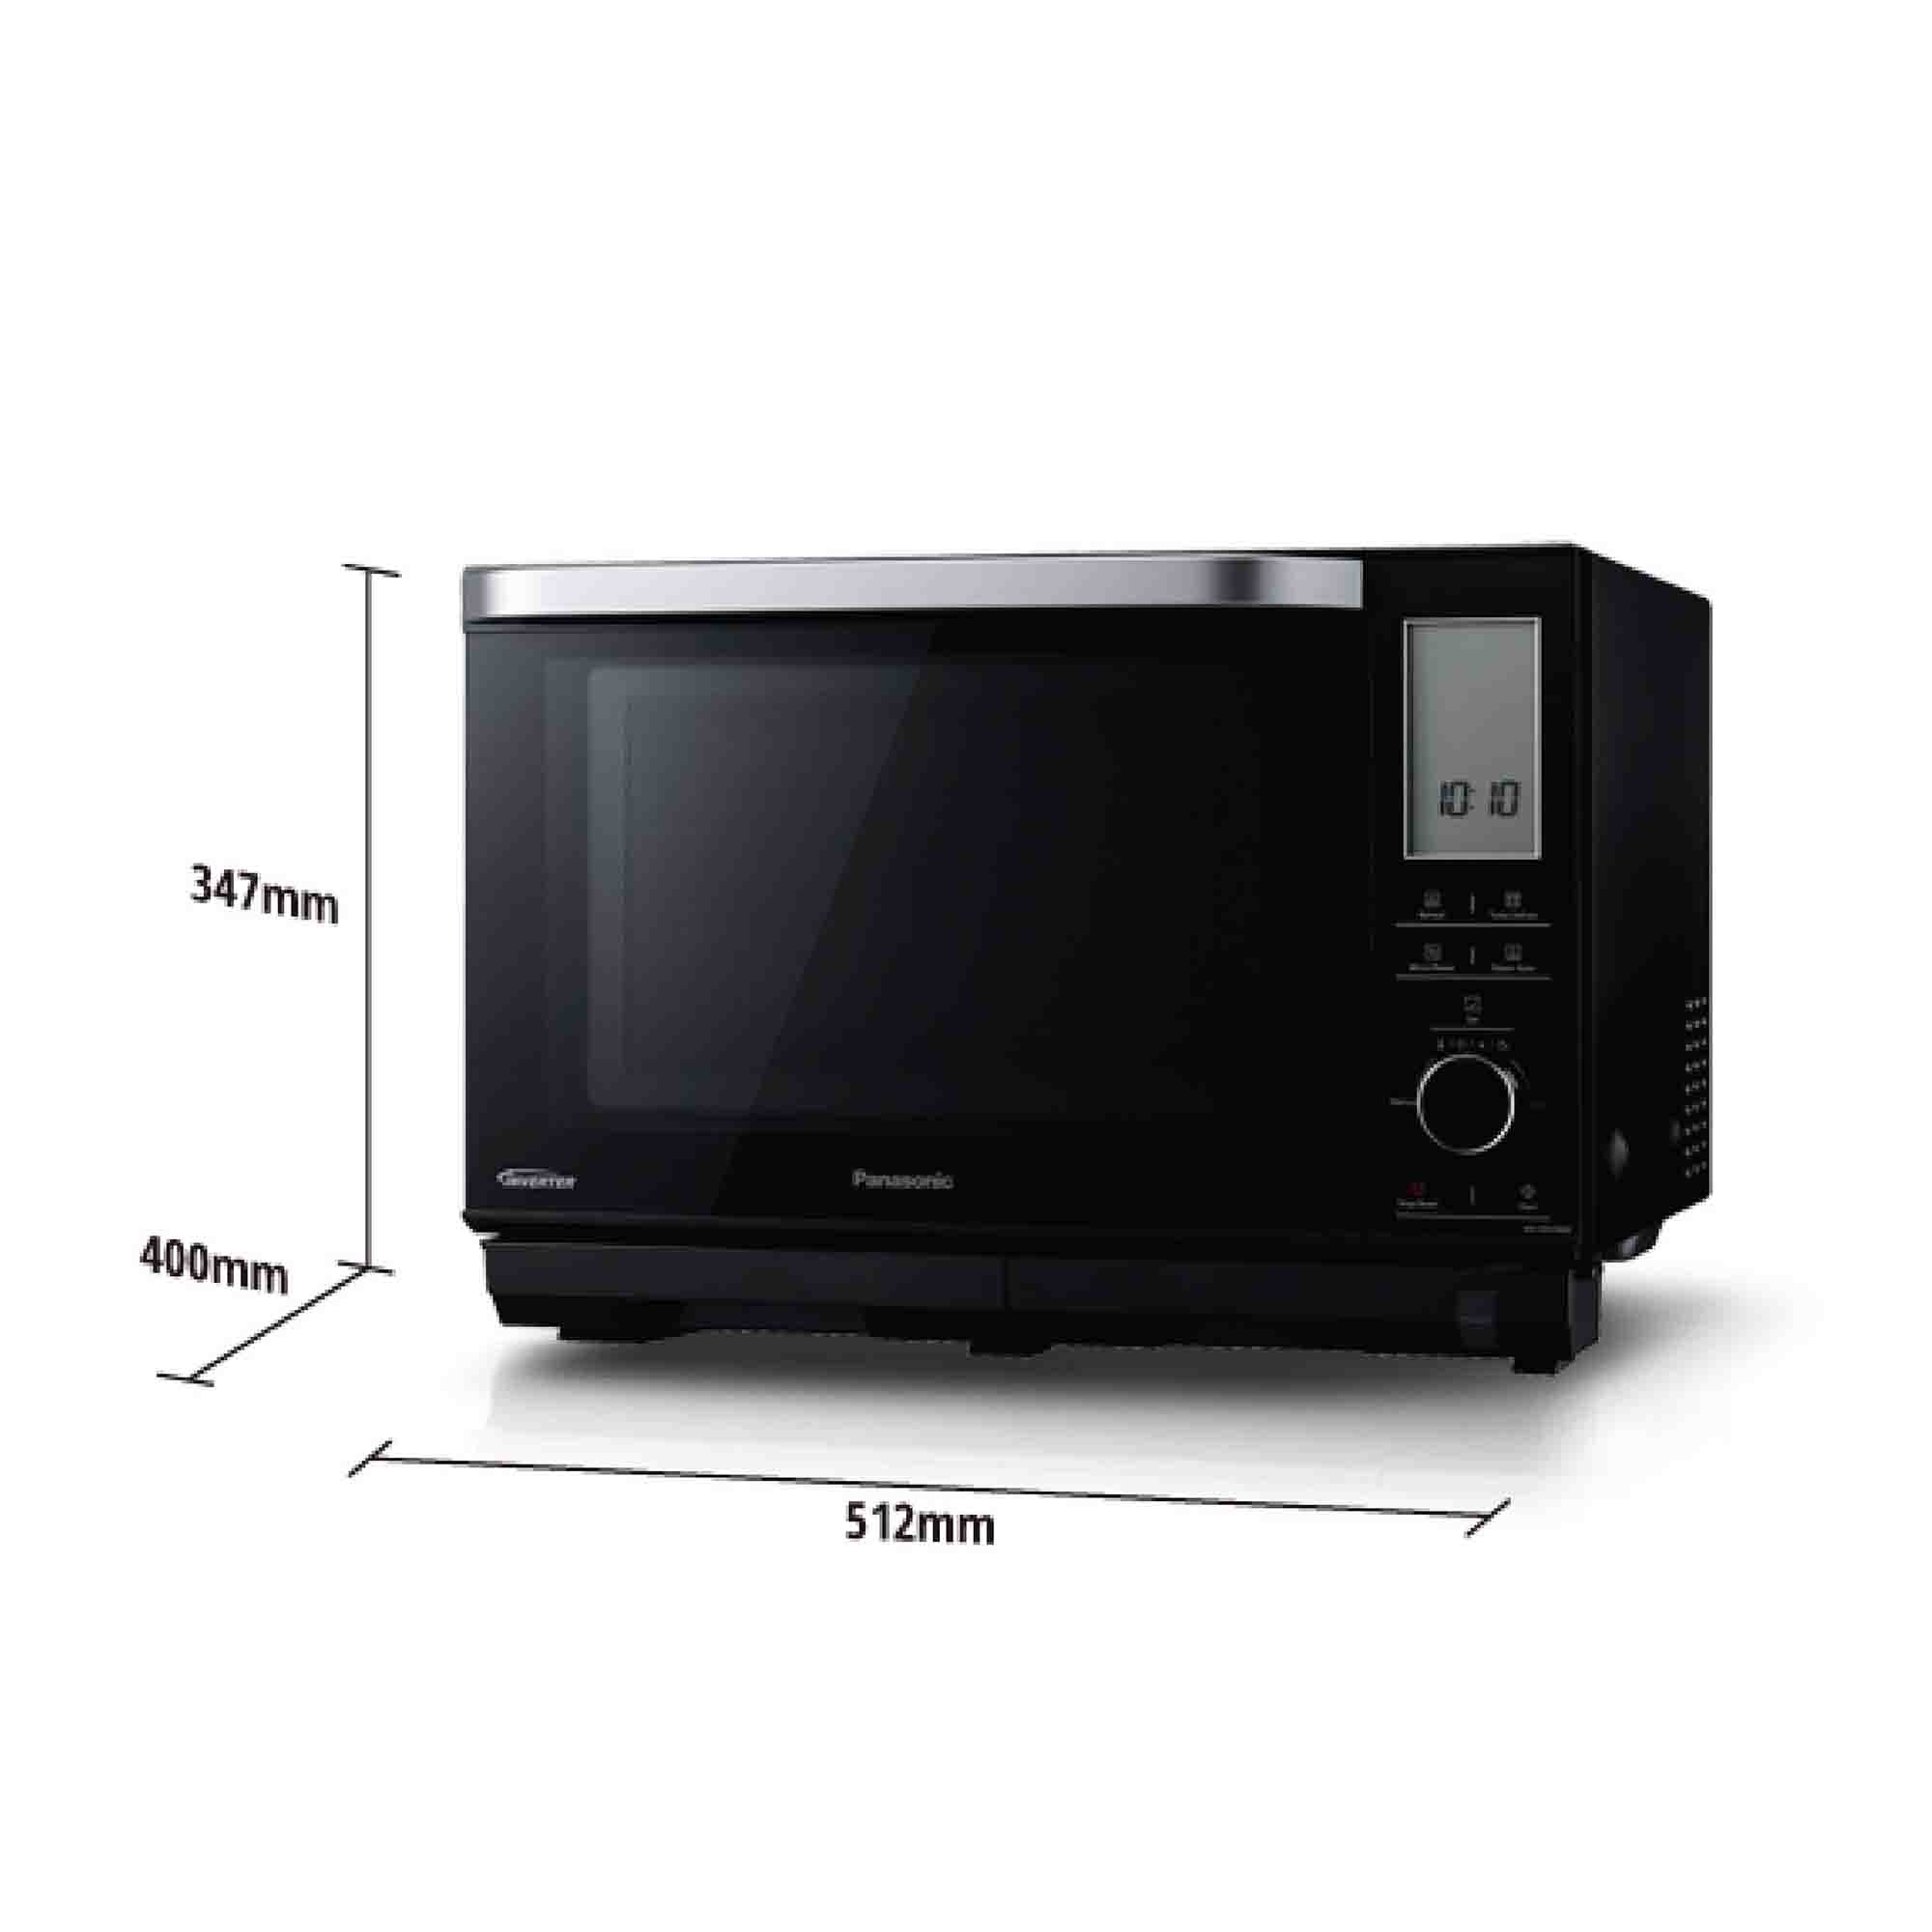 1 1 Microwave Oven Bestmicrowave